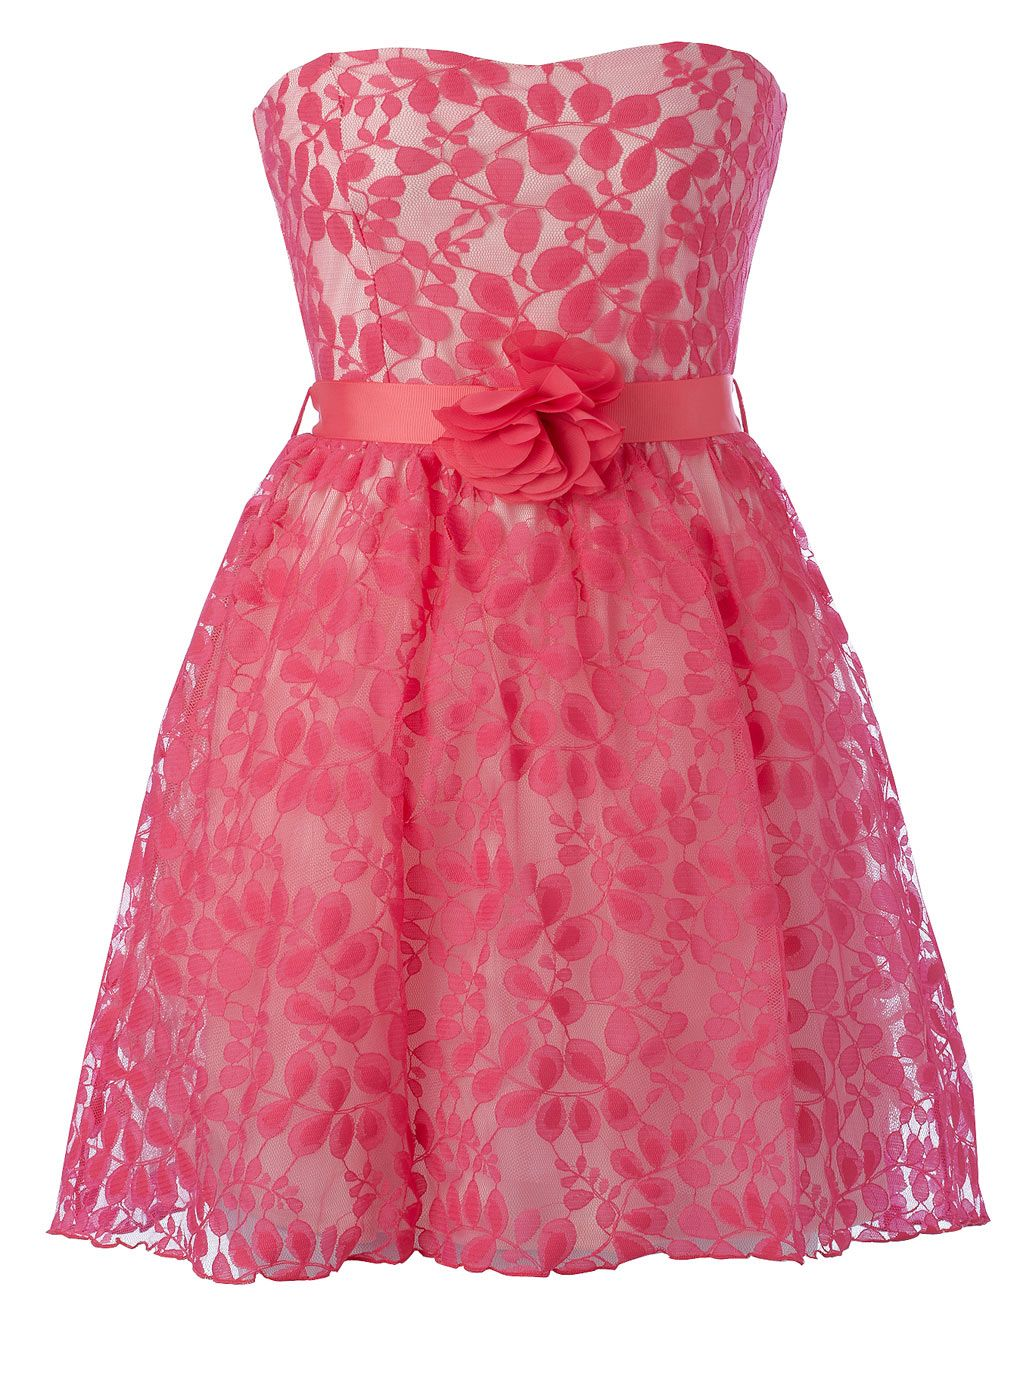 Formal dresses for girls bright pink flower lace prom dress